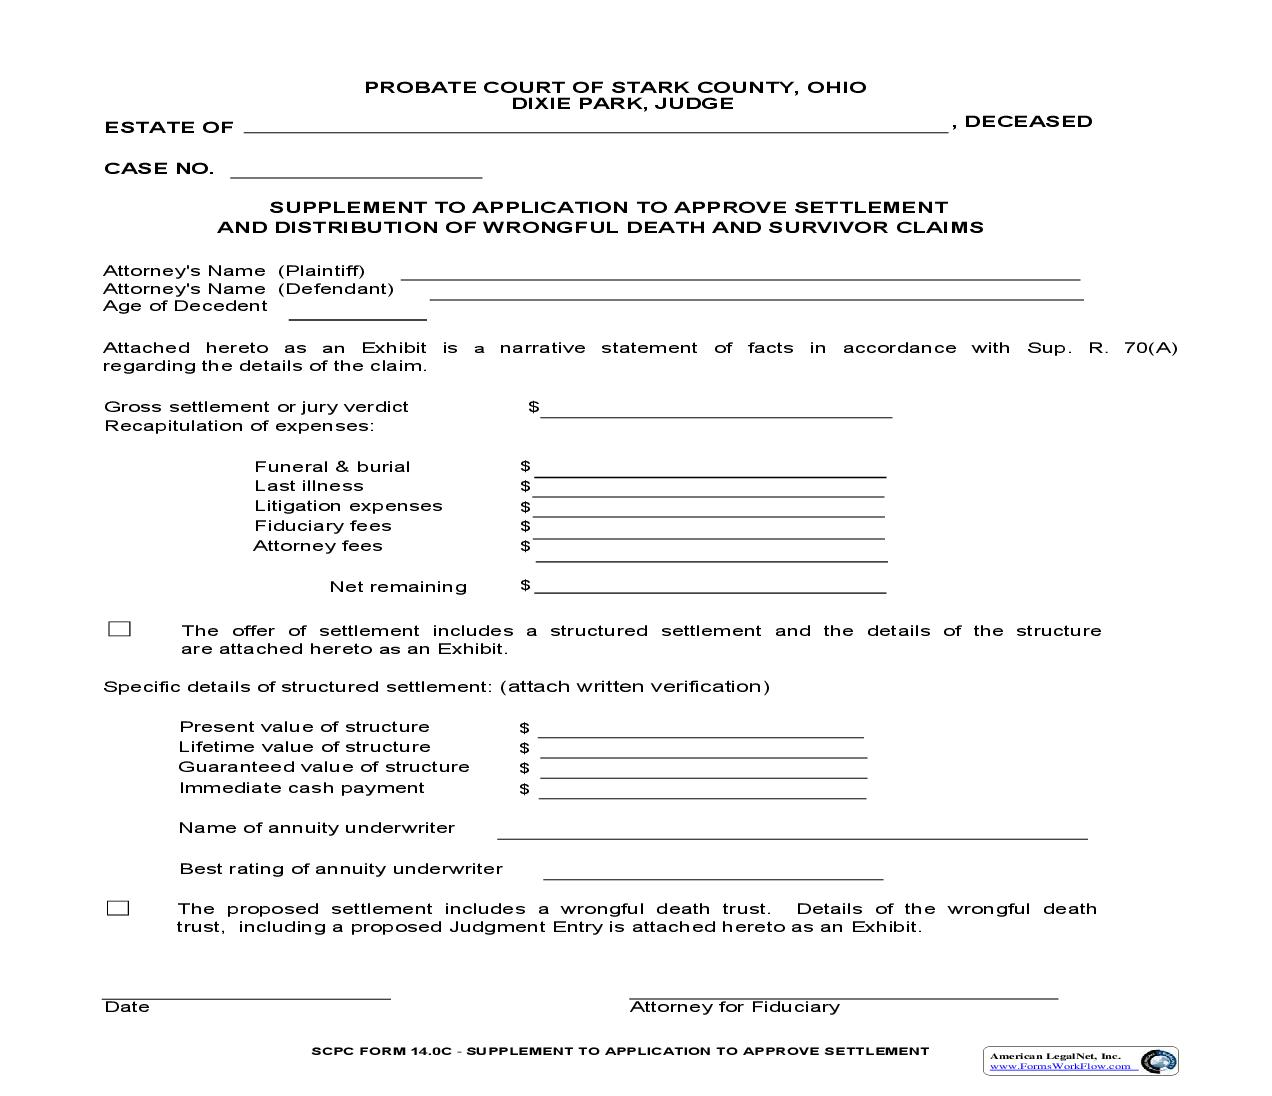 Supplement To Application To Approve Settlement And Distribution Of Wrongful Death And Survival Claims {14.0C}   Pdf Fpdf Doc Docx   Ohio